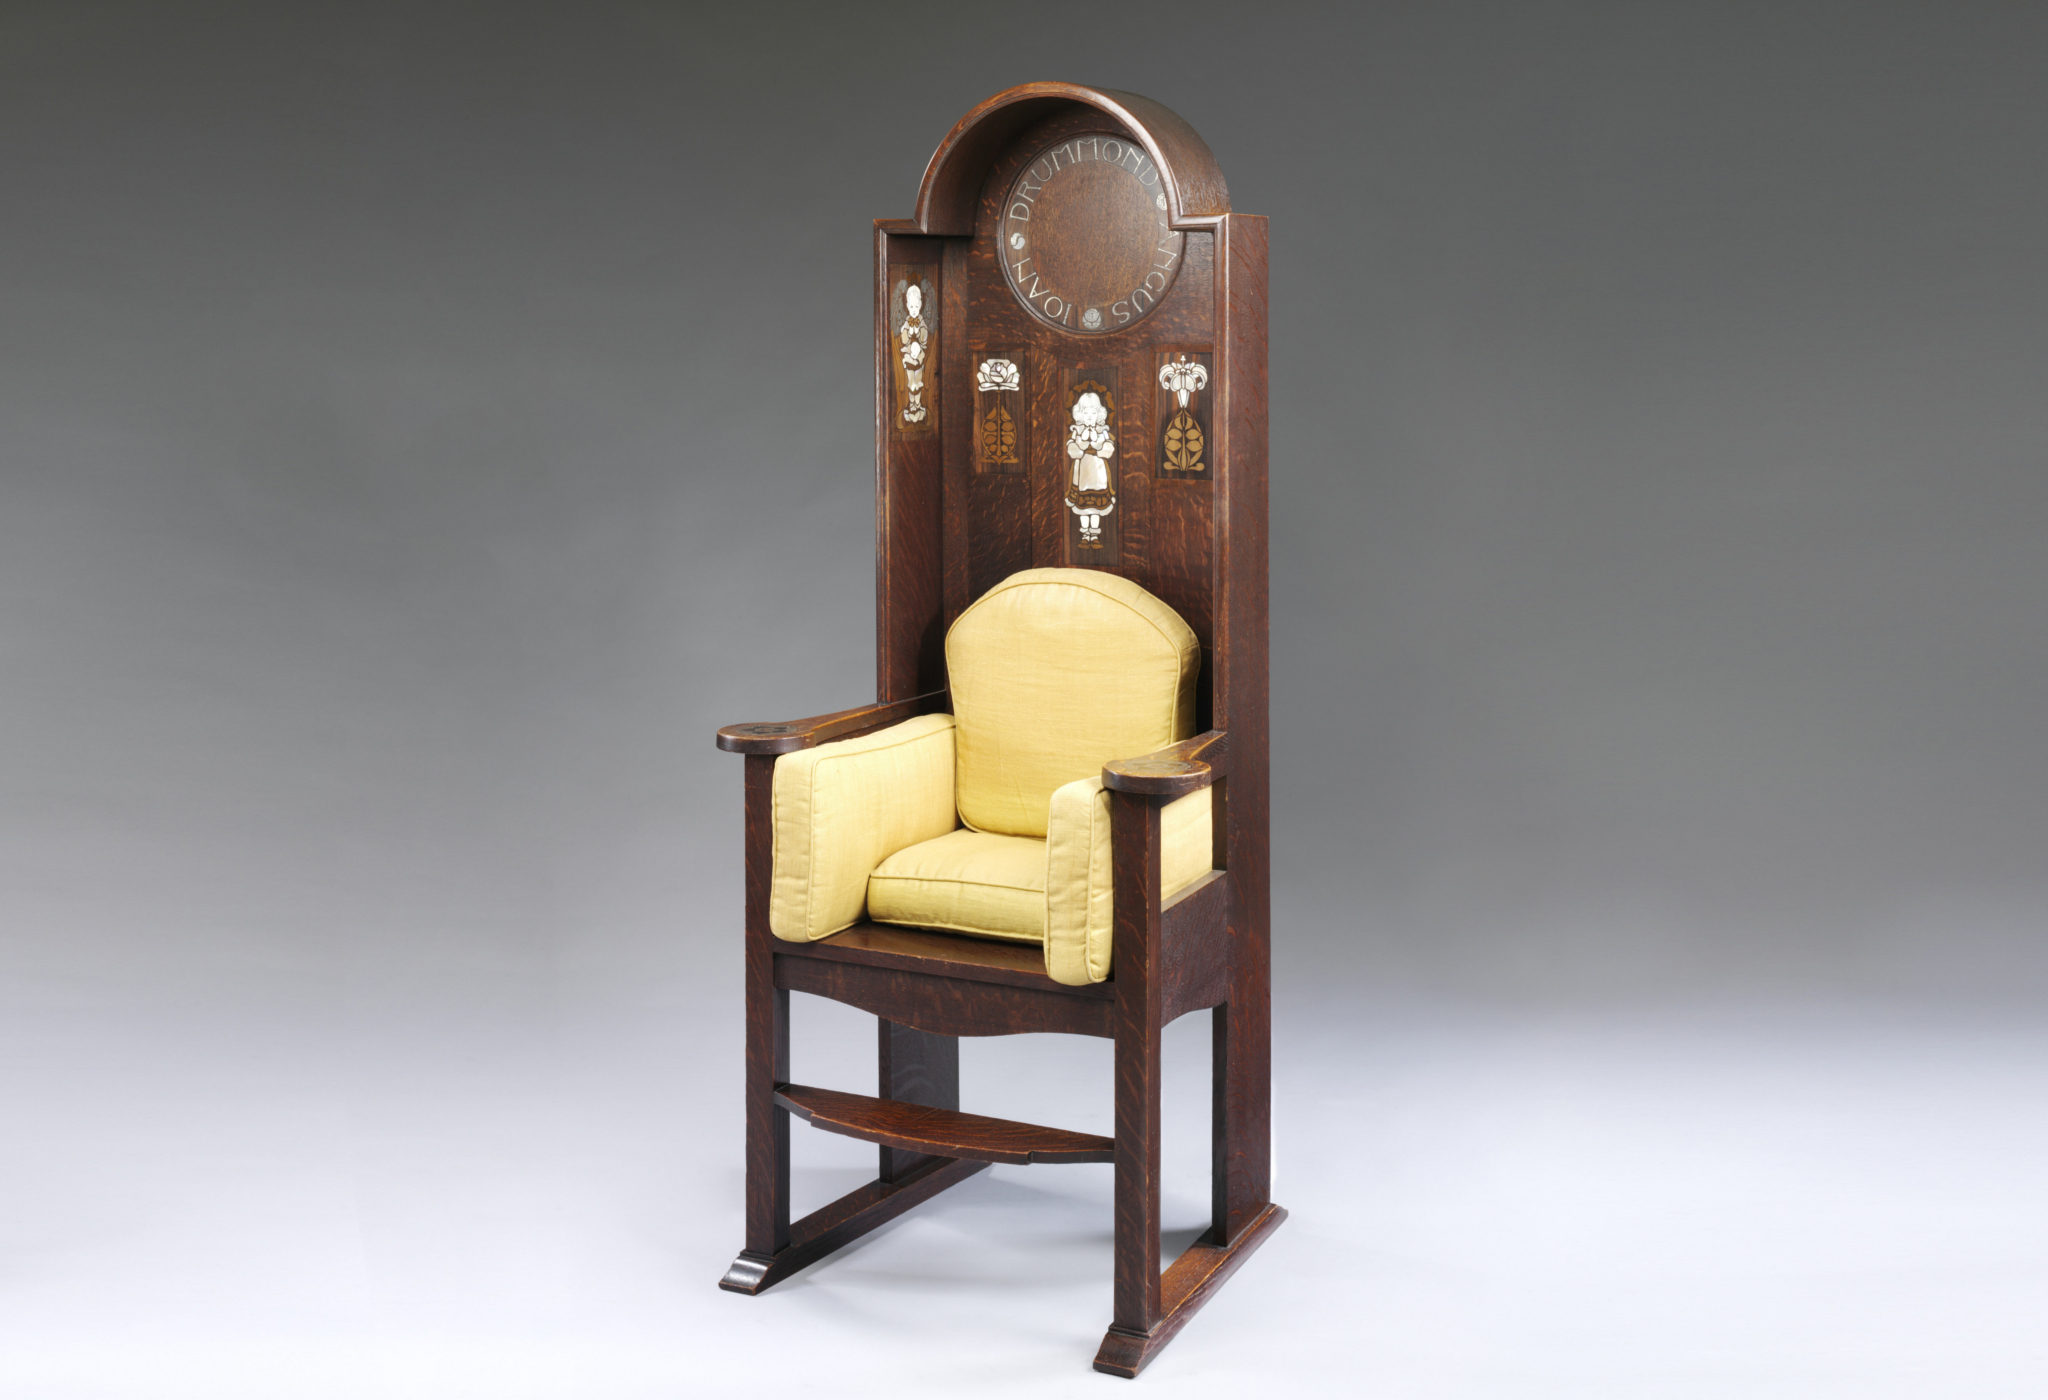 joan chair, ambrose heal